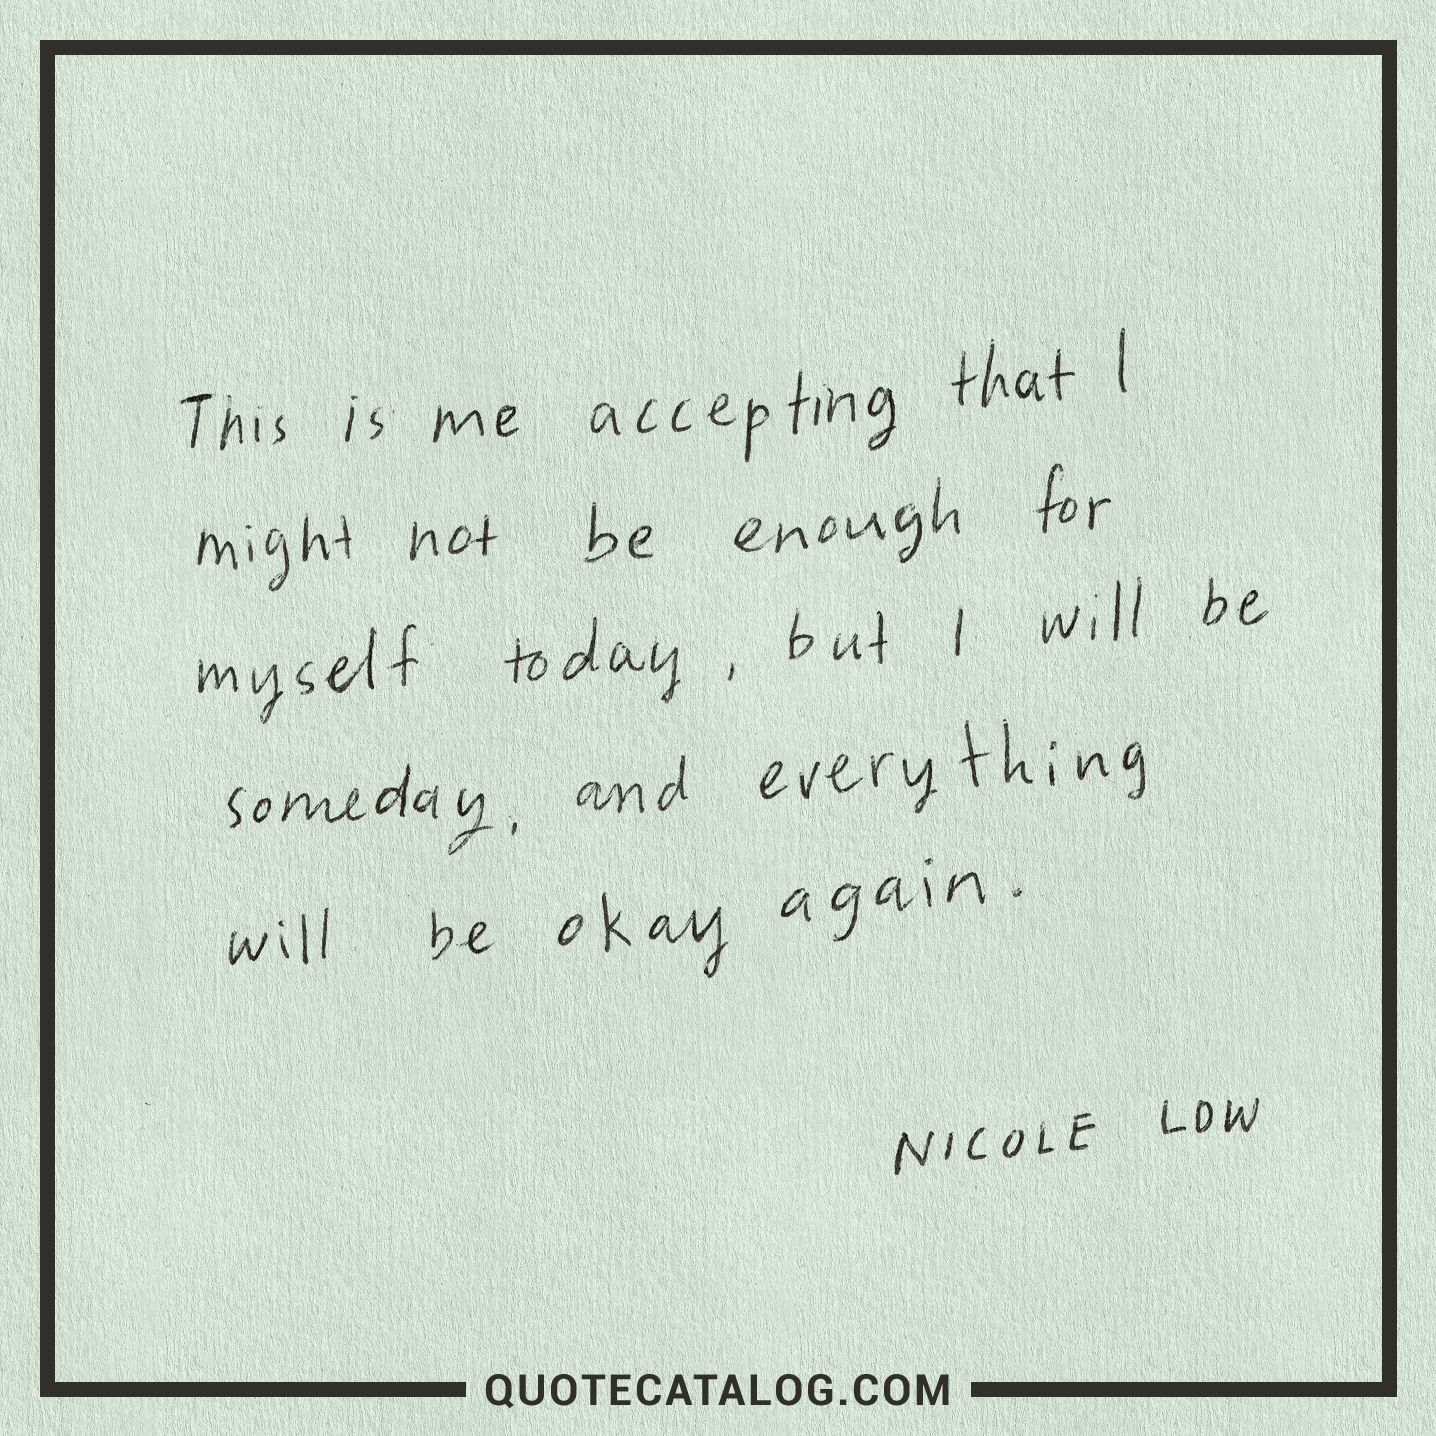 Nicole Low Quote This Is Me Accepting That I Might Not Be